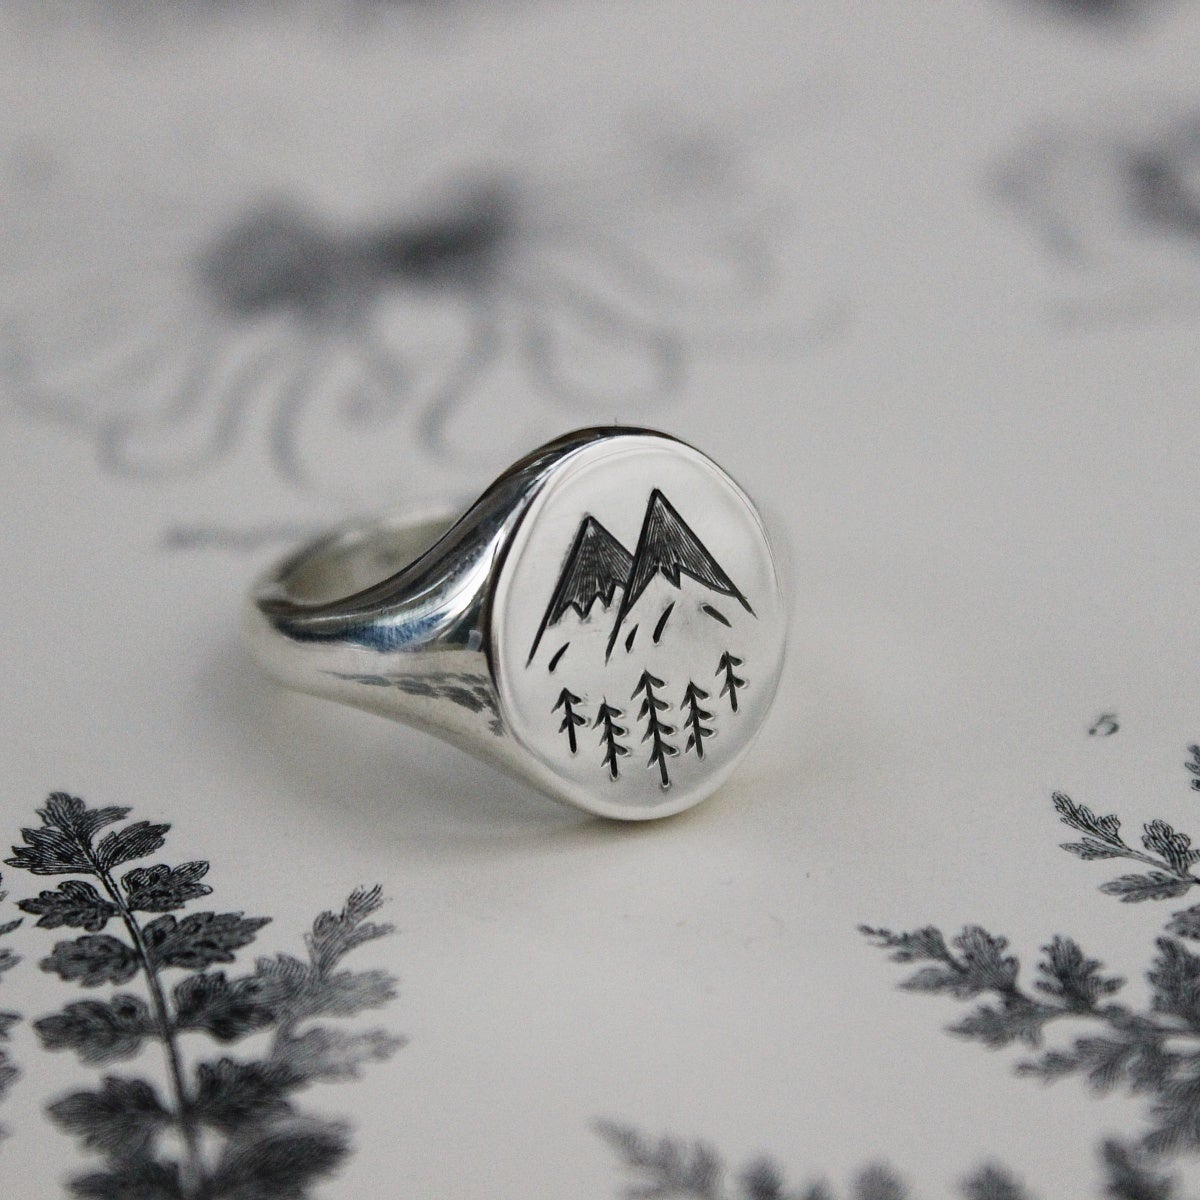 Image of 'Alps' Wilderness large signet ring